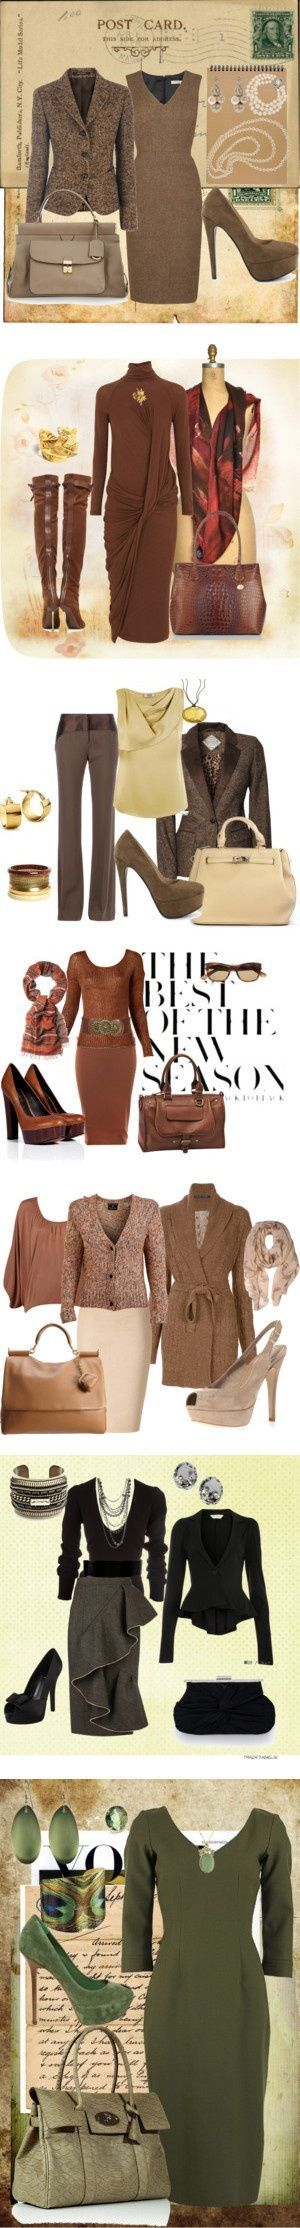 Great fall wardrobe for work and not too casual events. Very nice color palate …